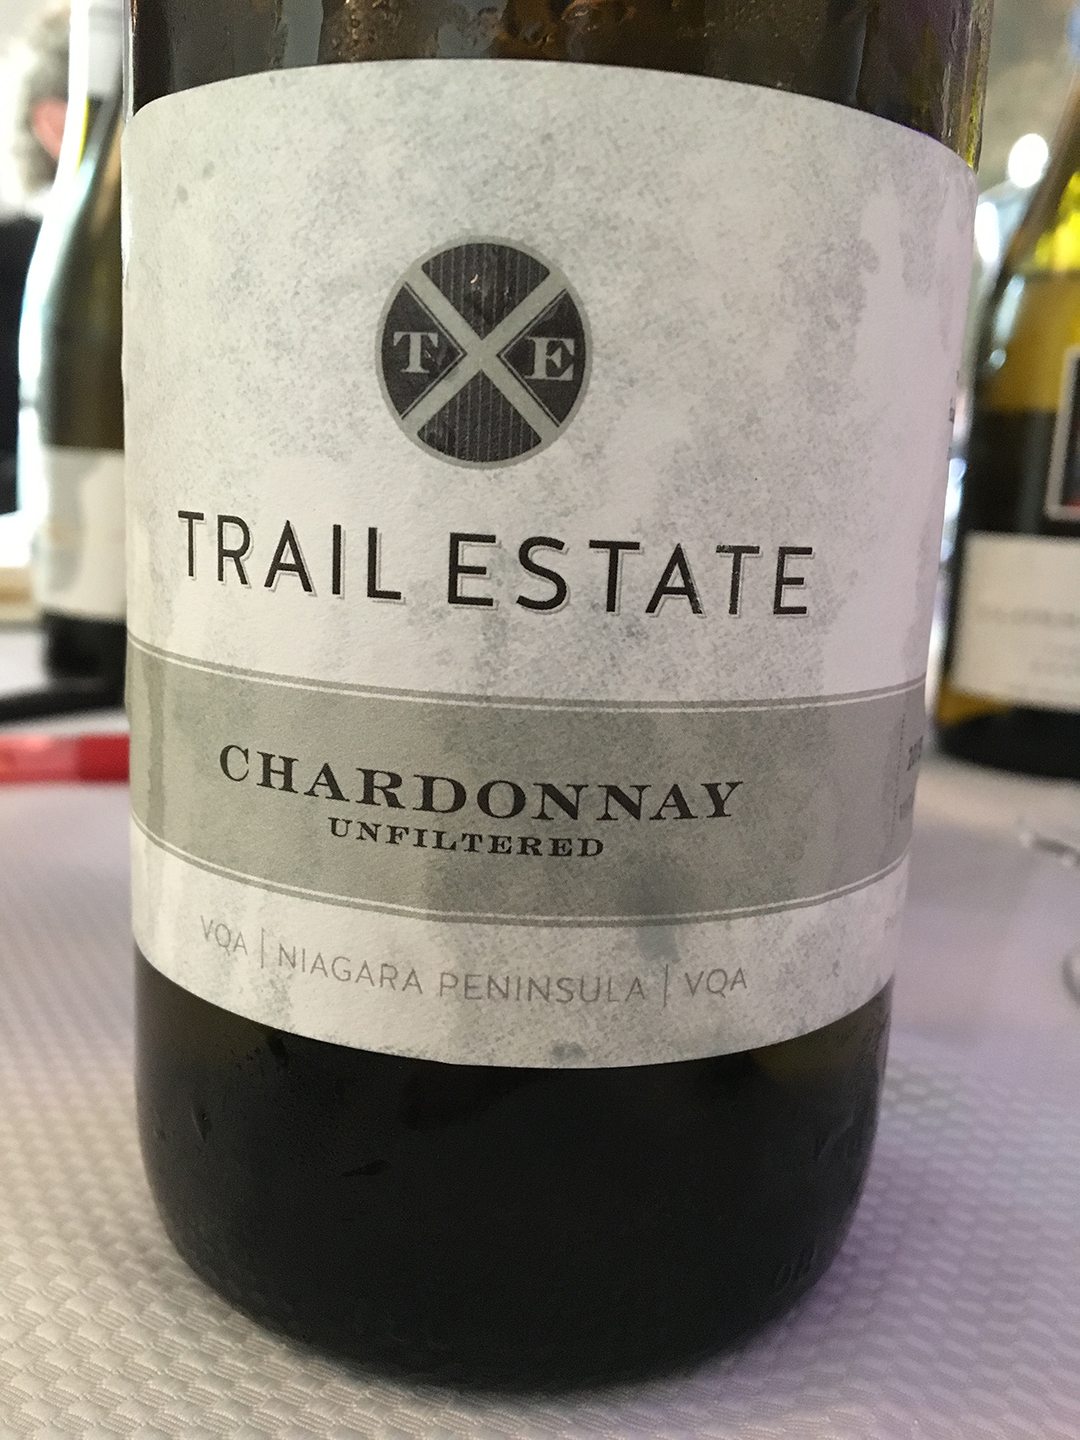 Trail Estate Chardonnay 2015